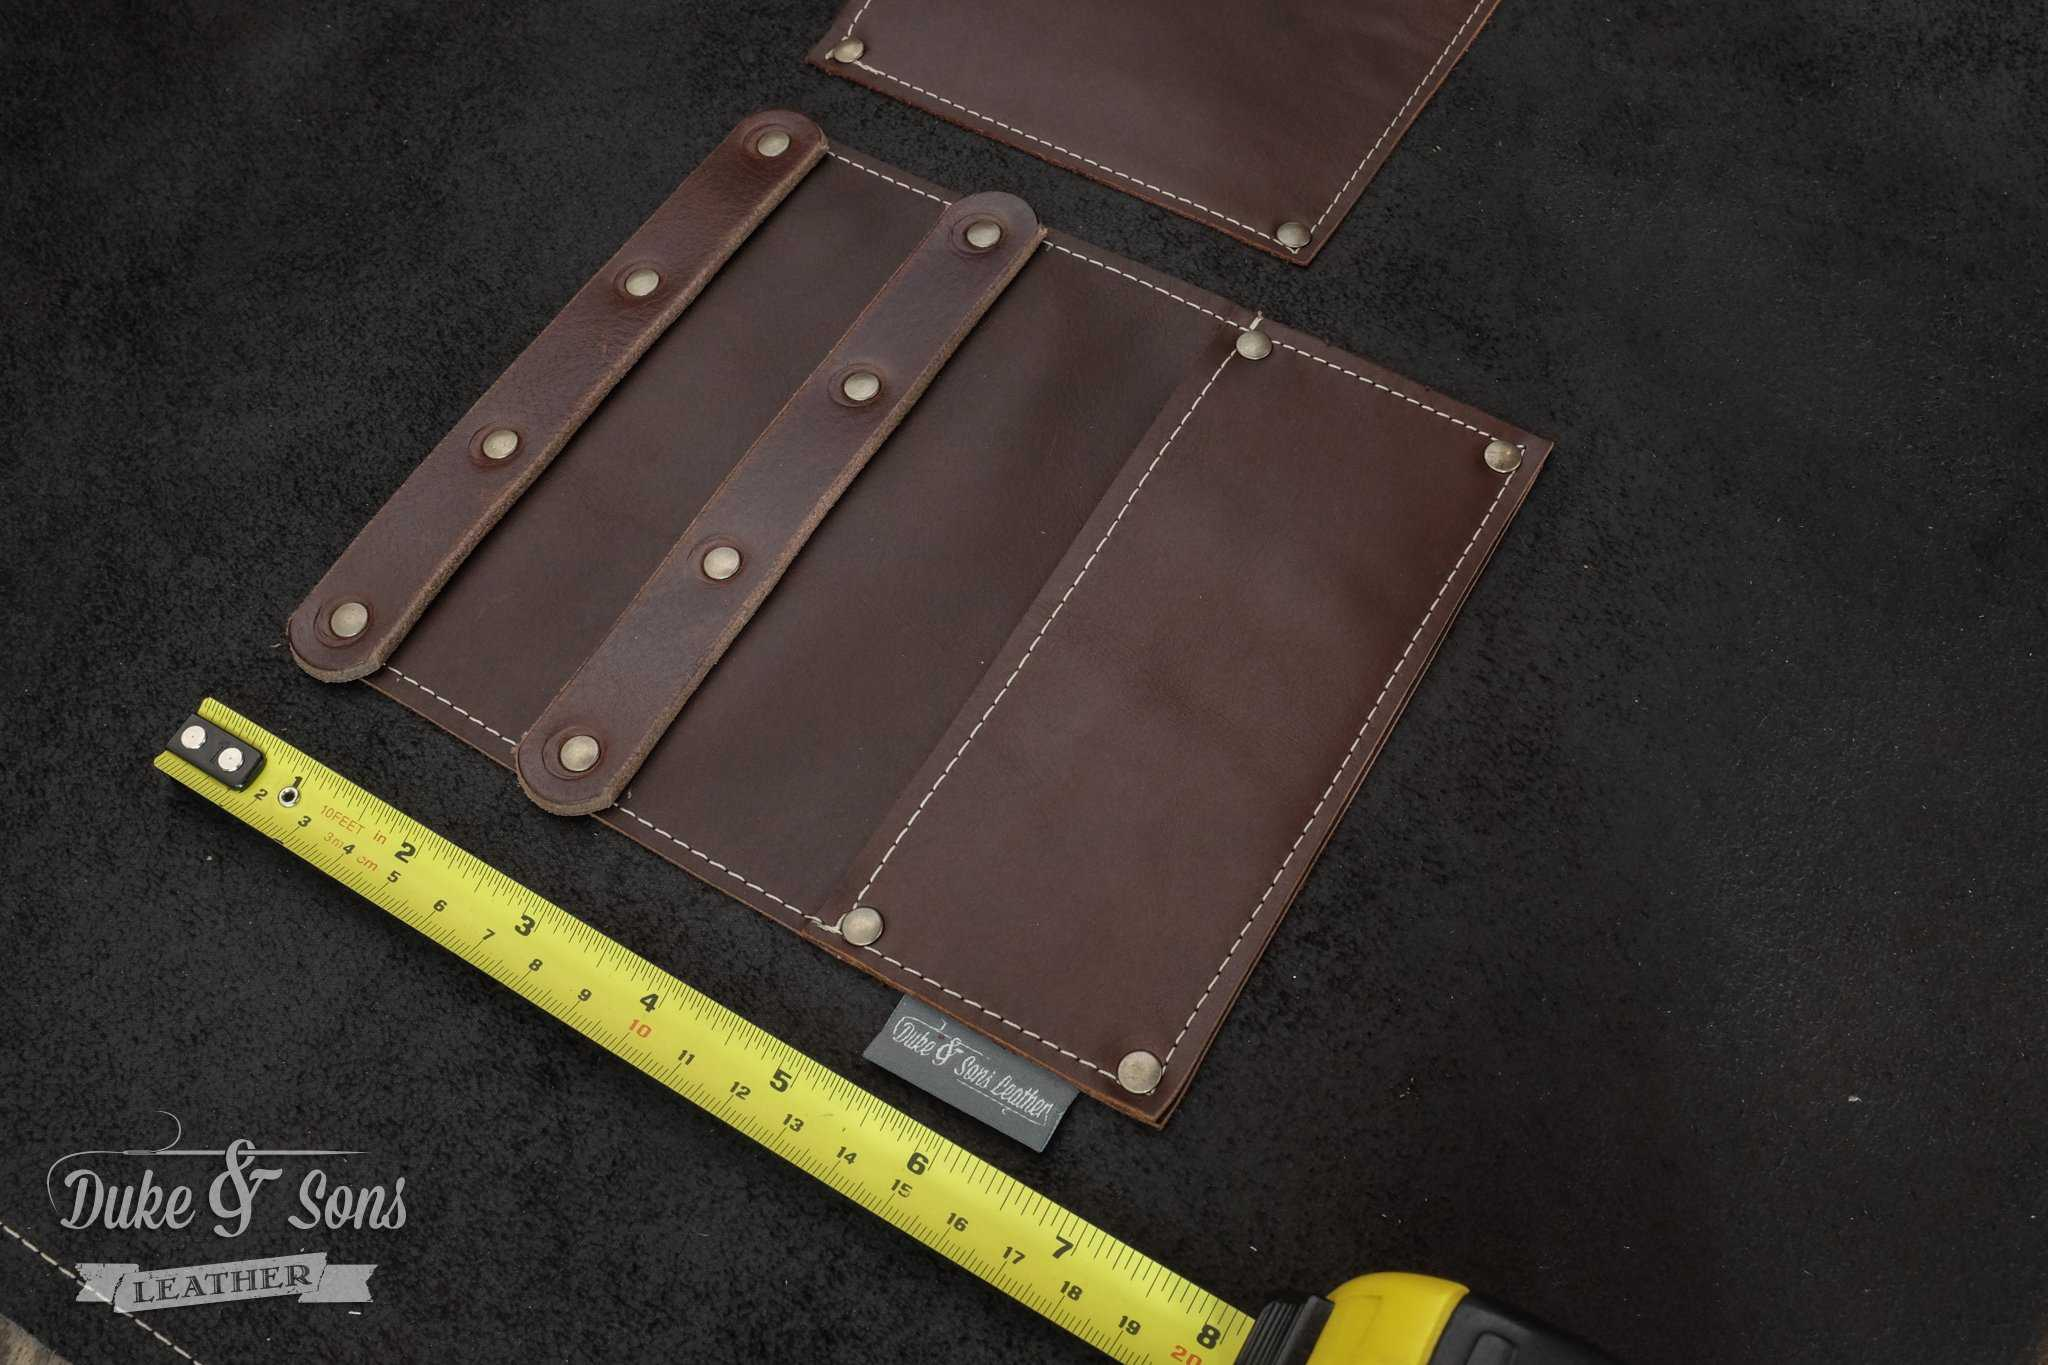 Barber apron, ready for 7 inch shears and combs. | Duke & Sons Leather